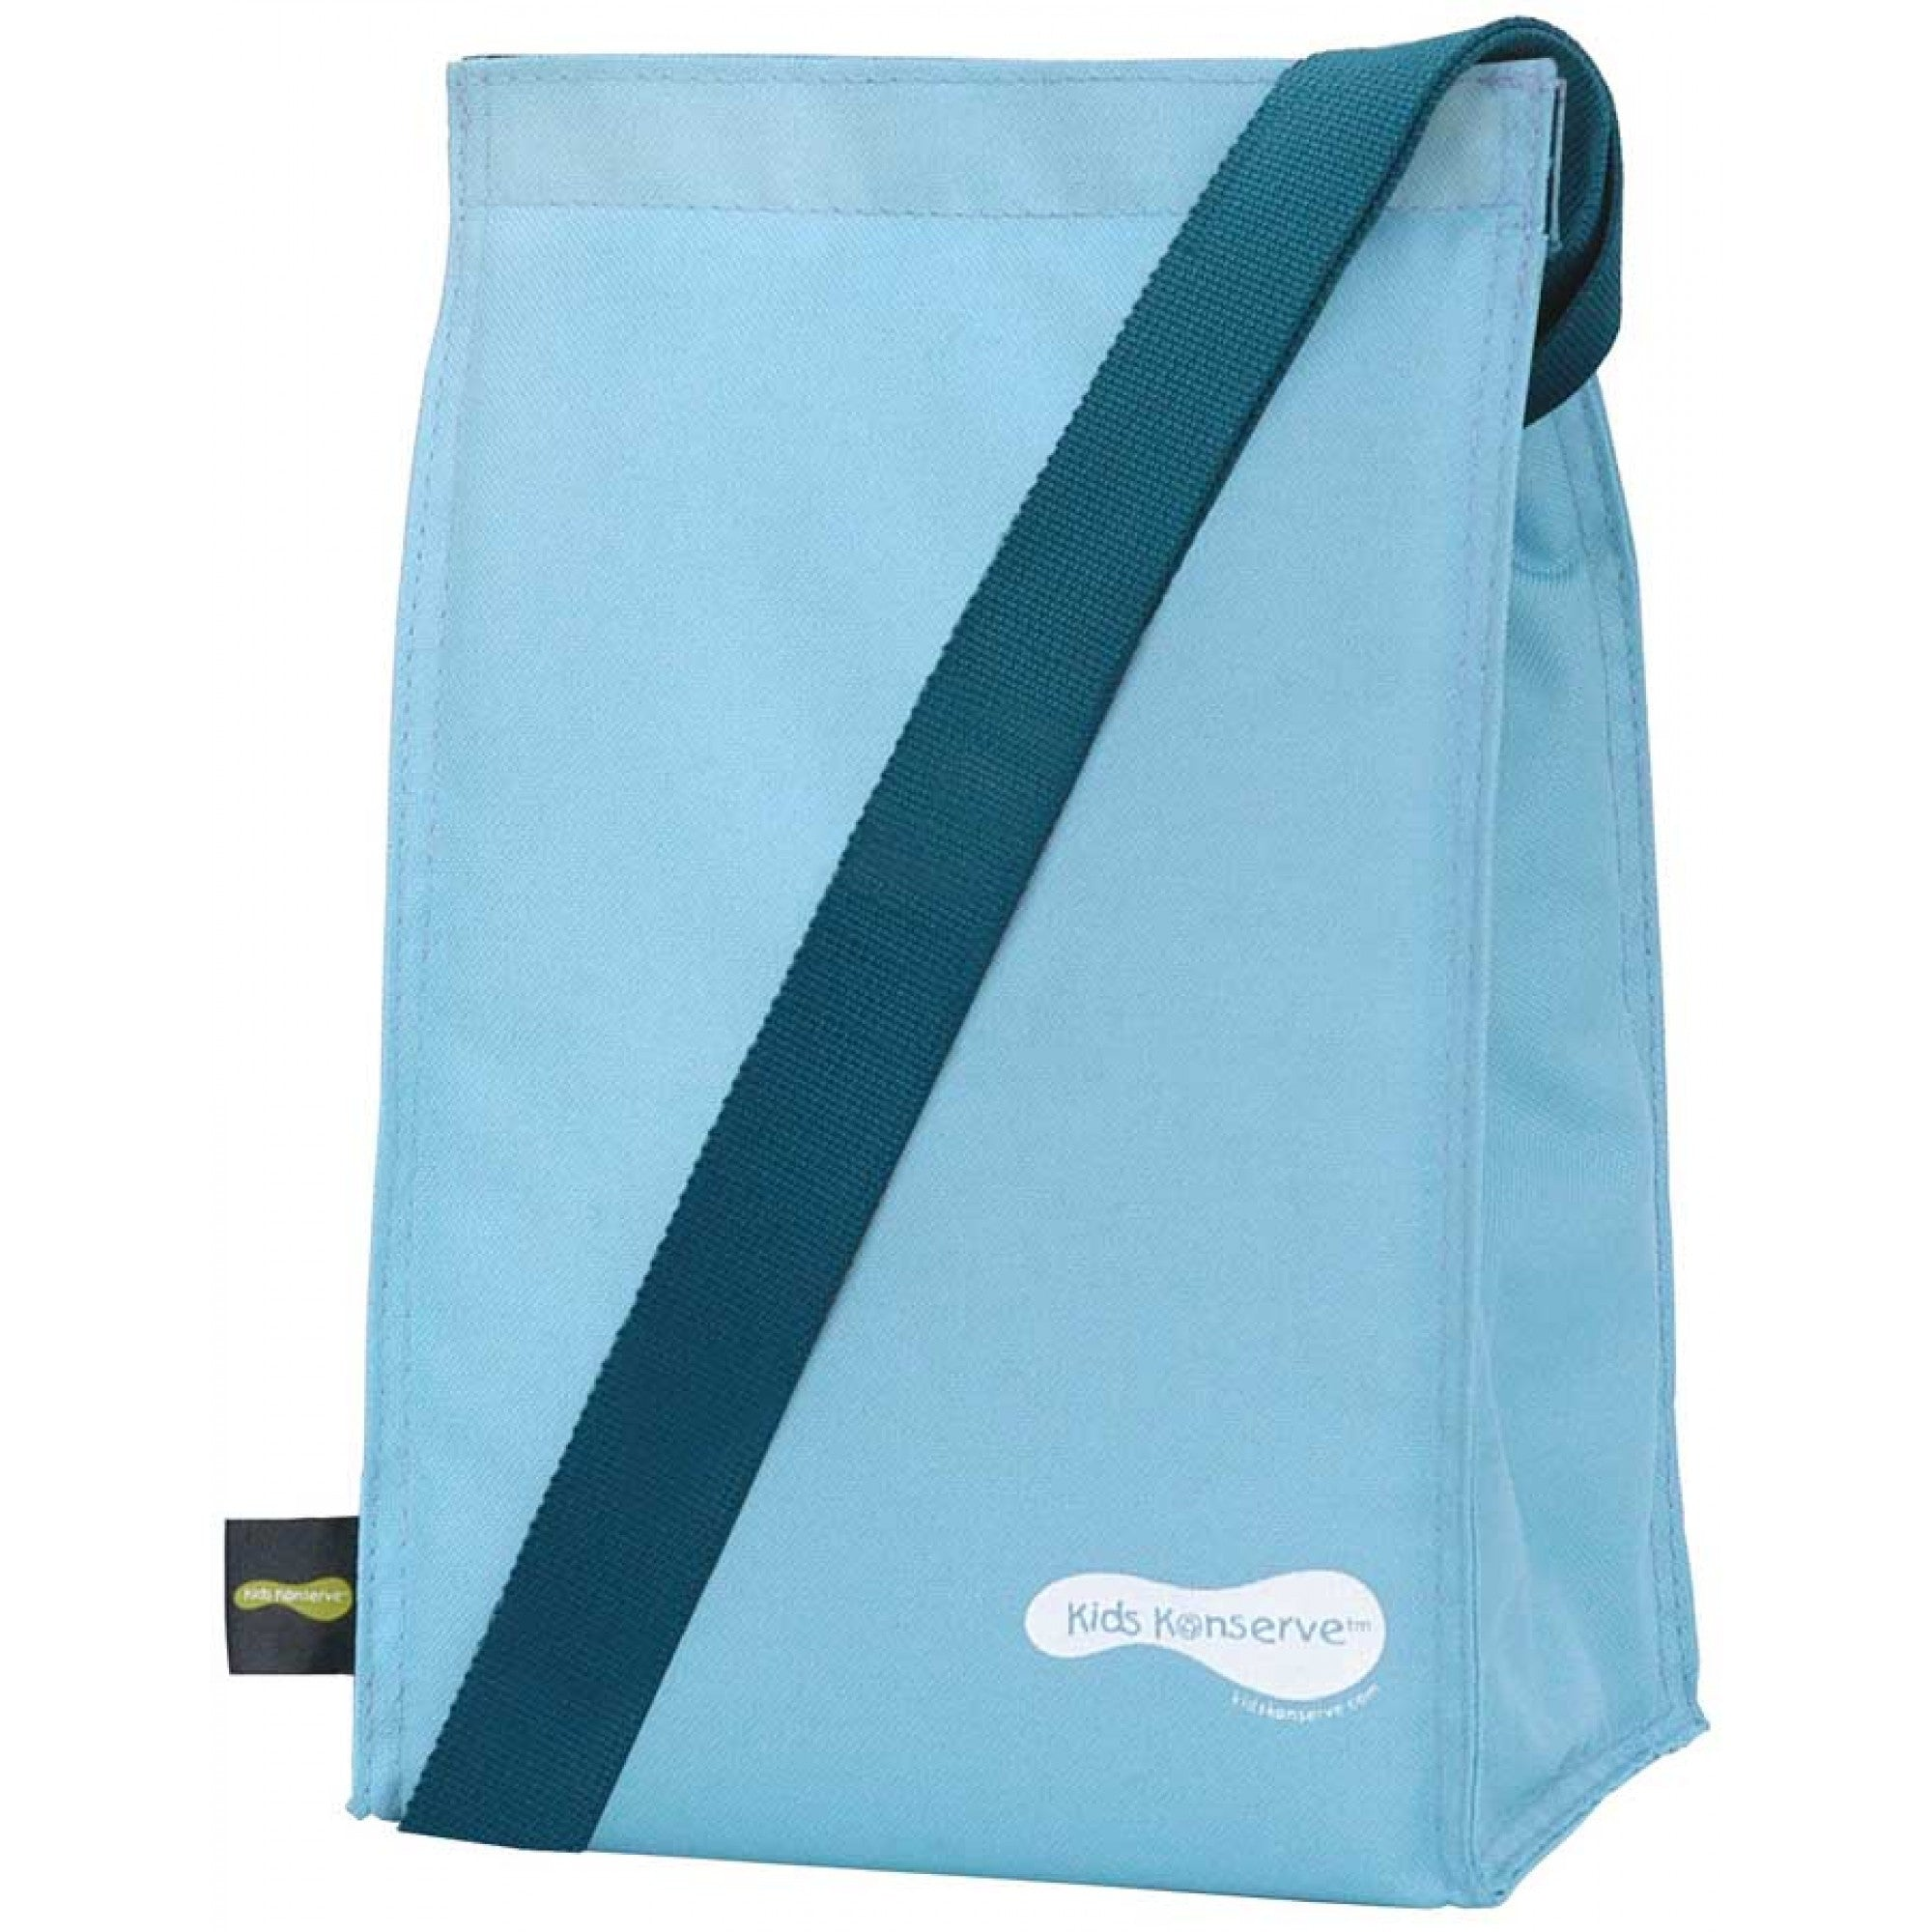 Kids Konserve Insulated Lunch Bag Kids Konserve Lunch Boxes and Bags Sky (Blue) at Little Earth Nest Eco Shop